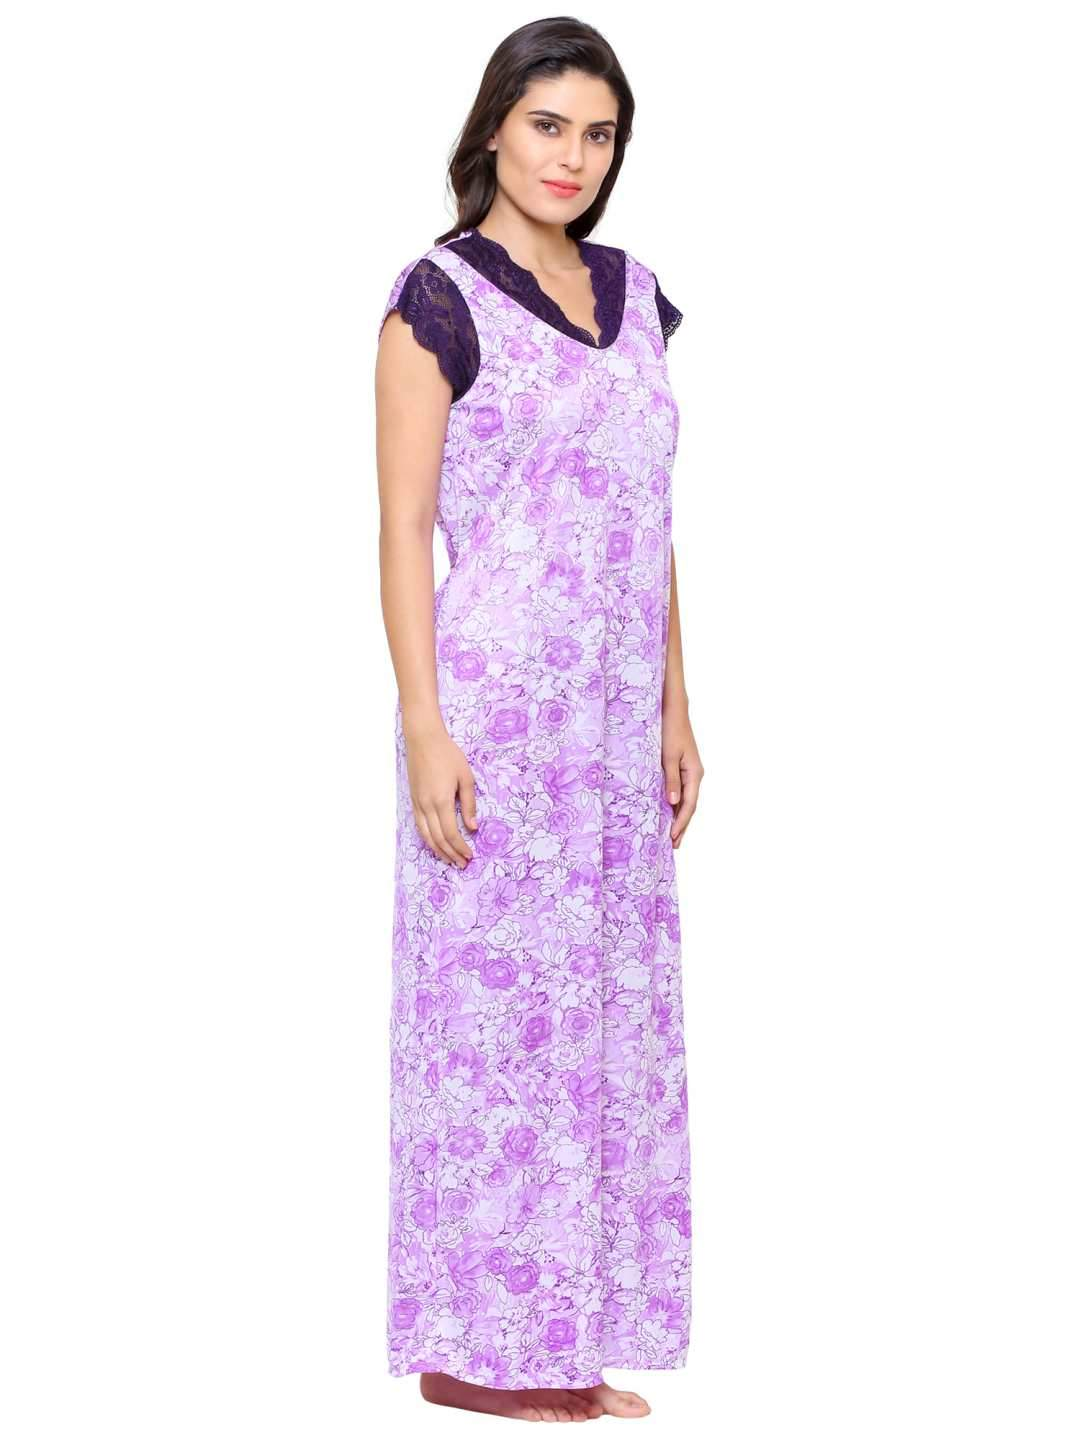 Klamotten Women's Printed Long Nightdress 50P26